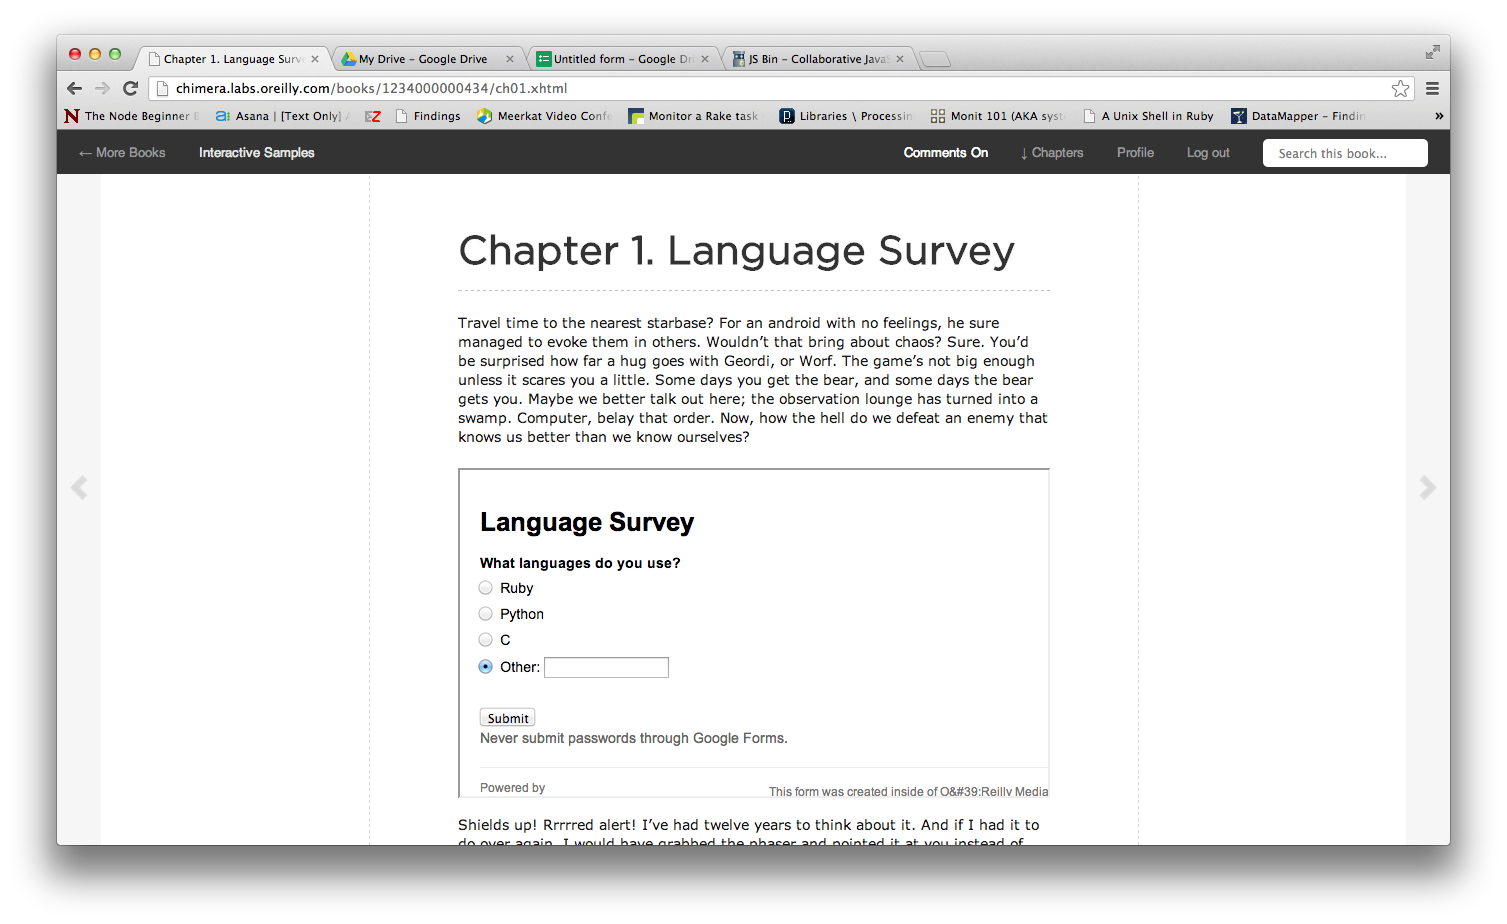 Embedding a survey inside your book on Chimera is a great way to gather early feedback.